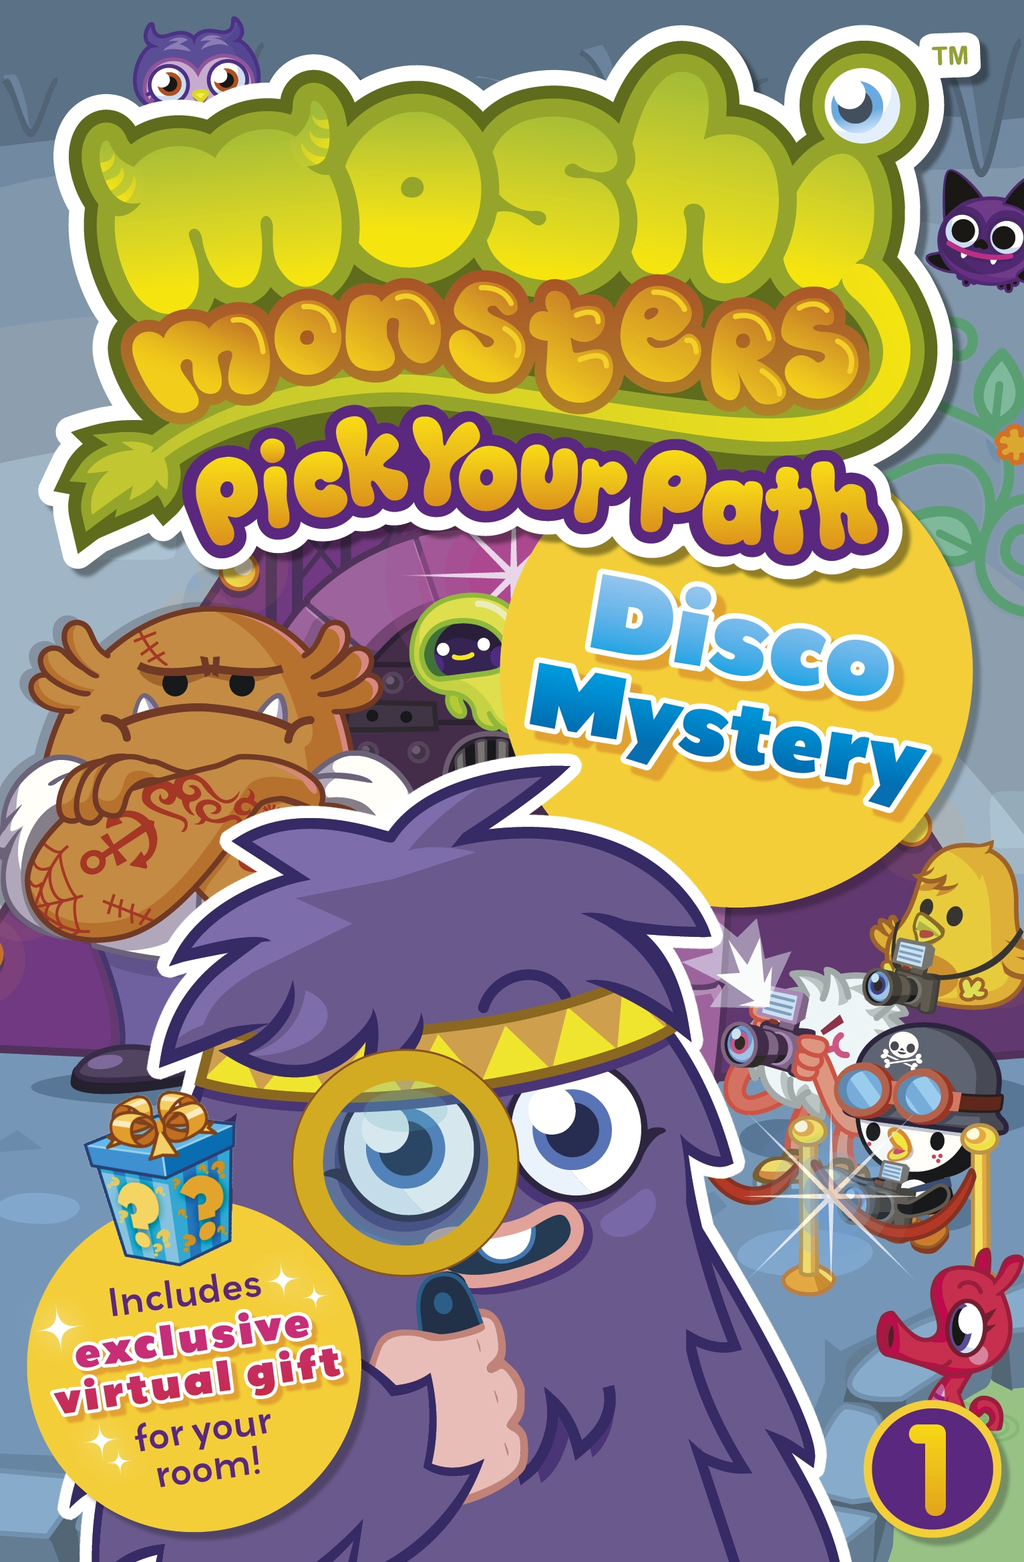 Moshi Monsters Pick Your Path 1: Disco Mystery Disco Mystery